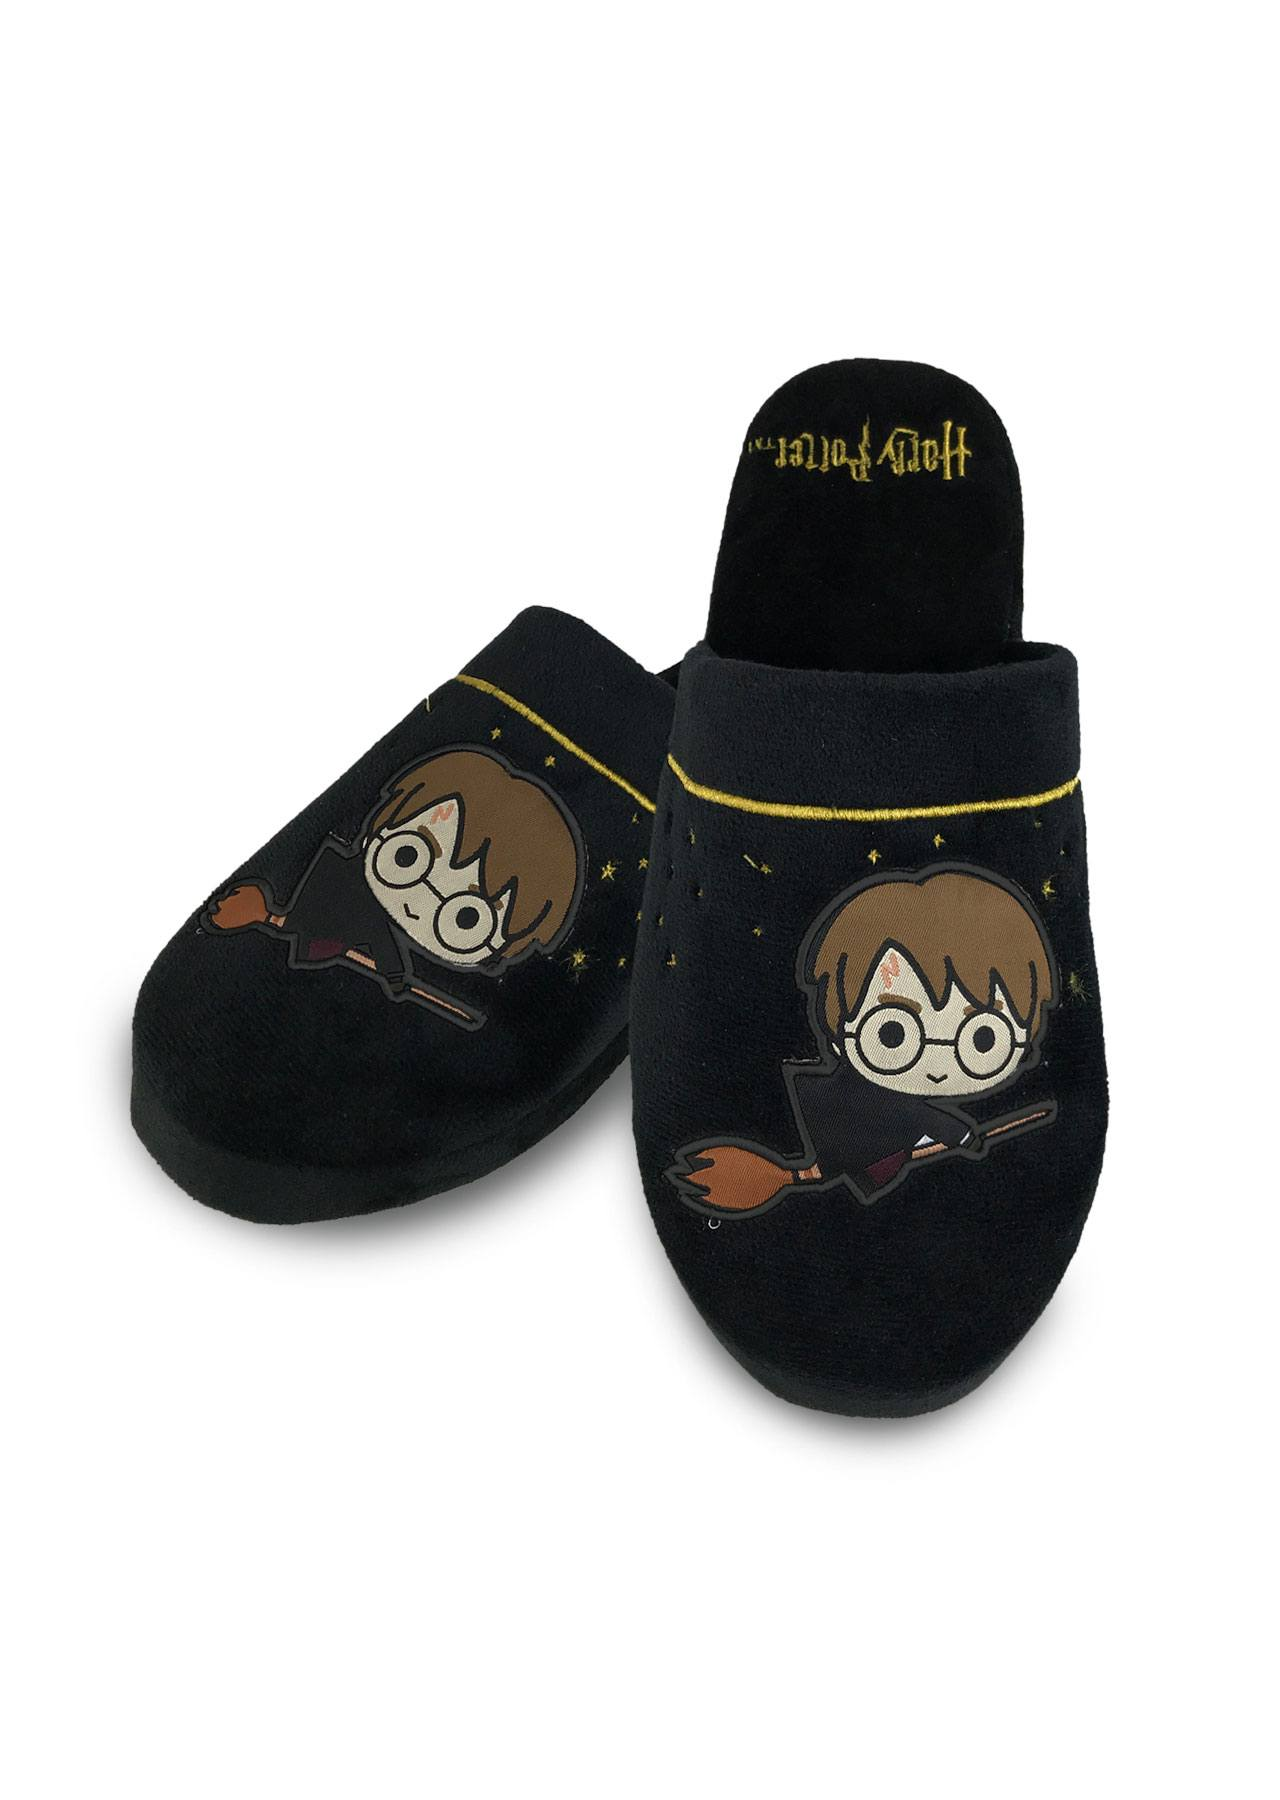 chaussons Kawaii Harry Potter - Harry Potter - la boutique du sorcier